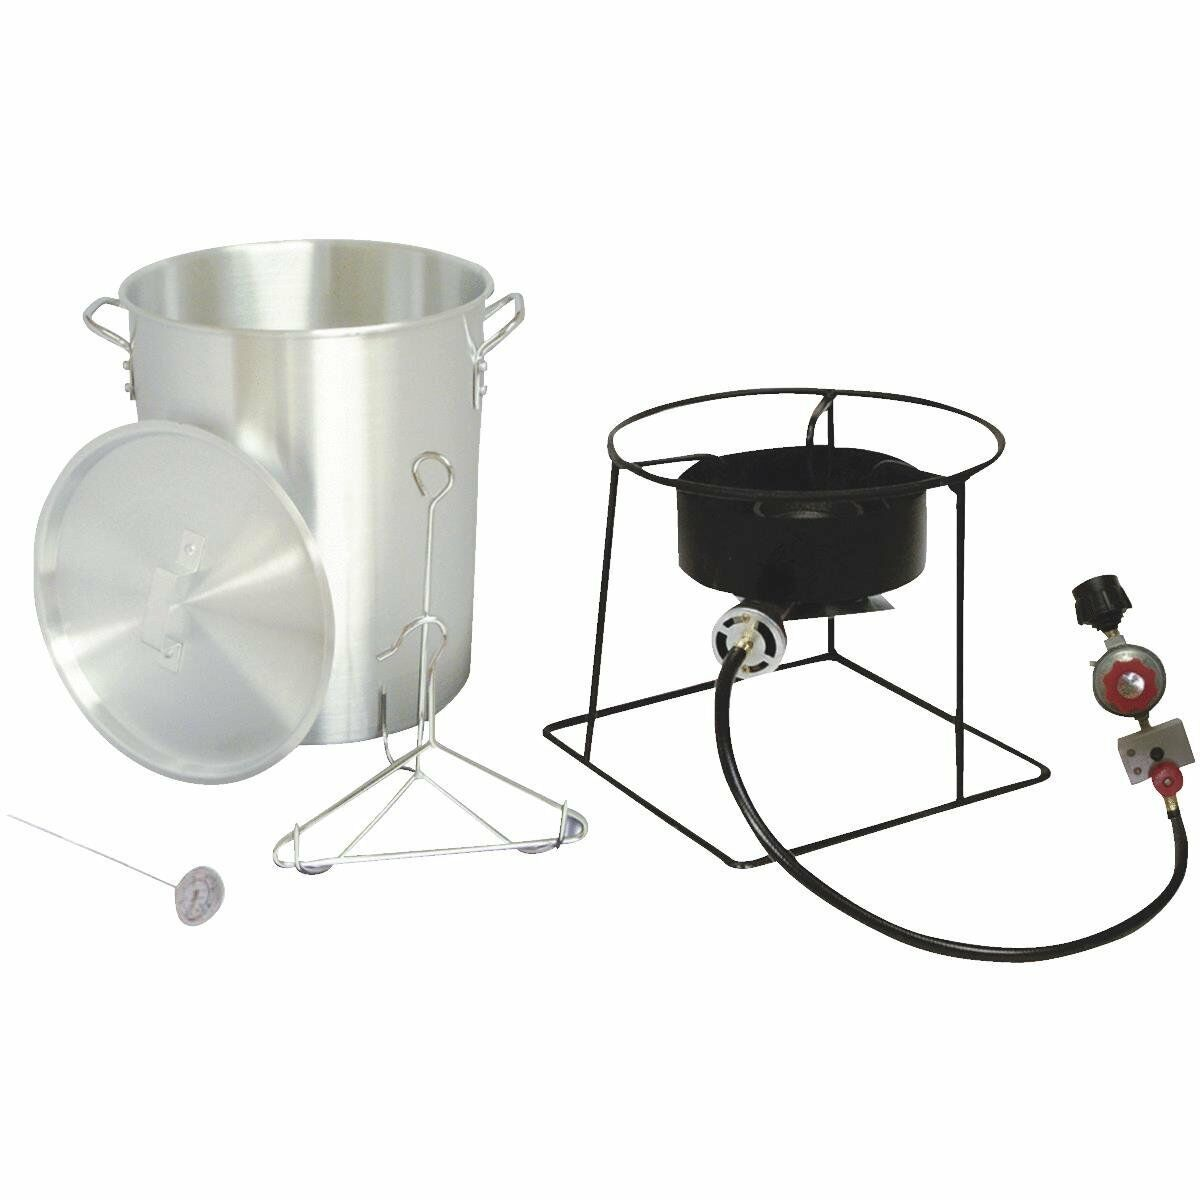 Turkey Fryer by Metal Fusion  - King  Kooker - model Brand New in Box  we take customers as our god